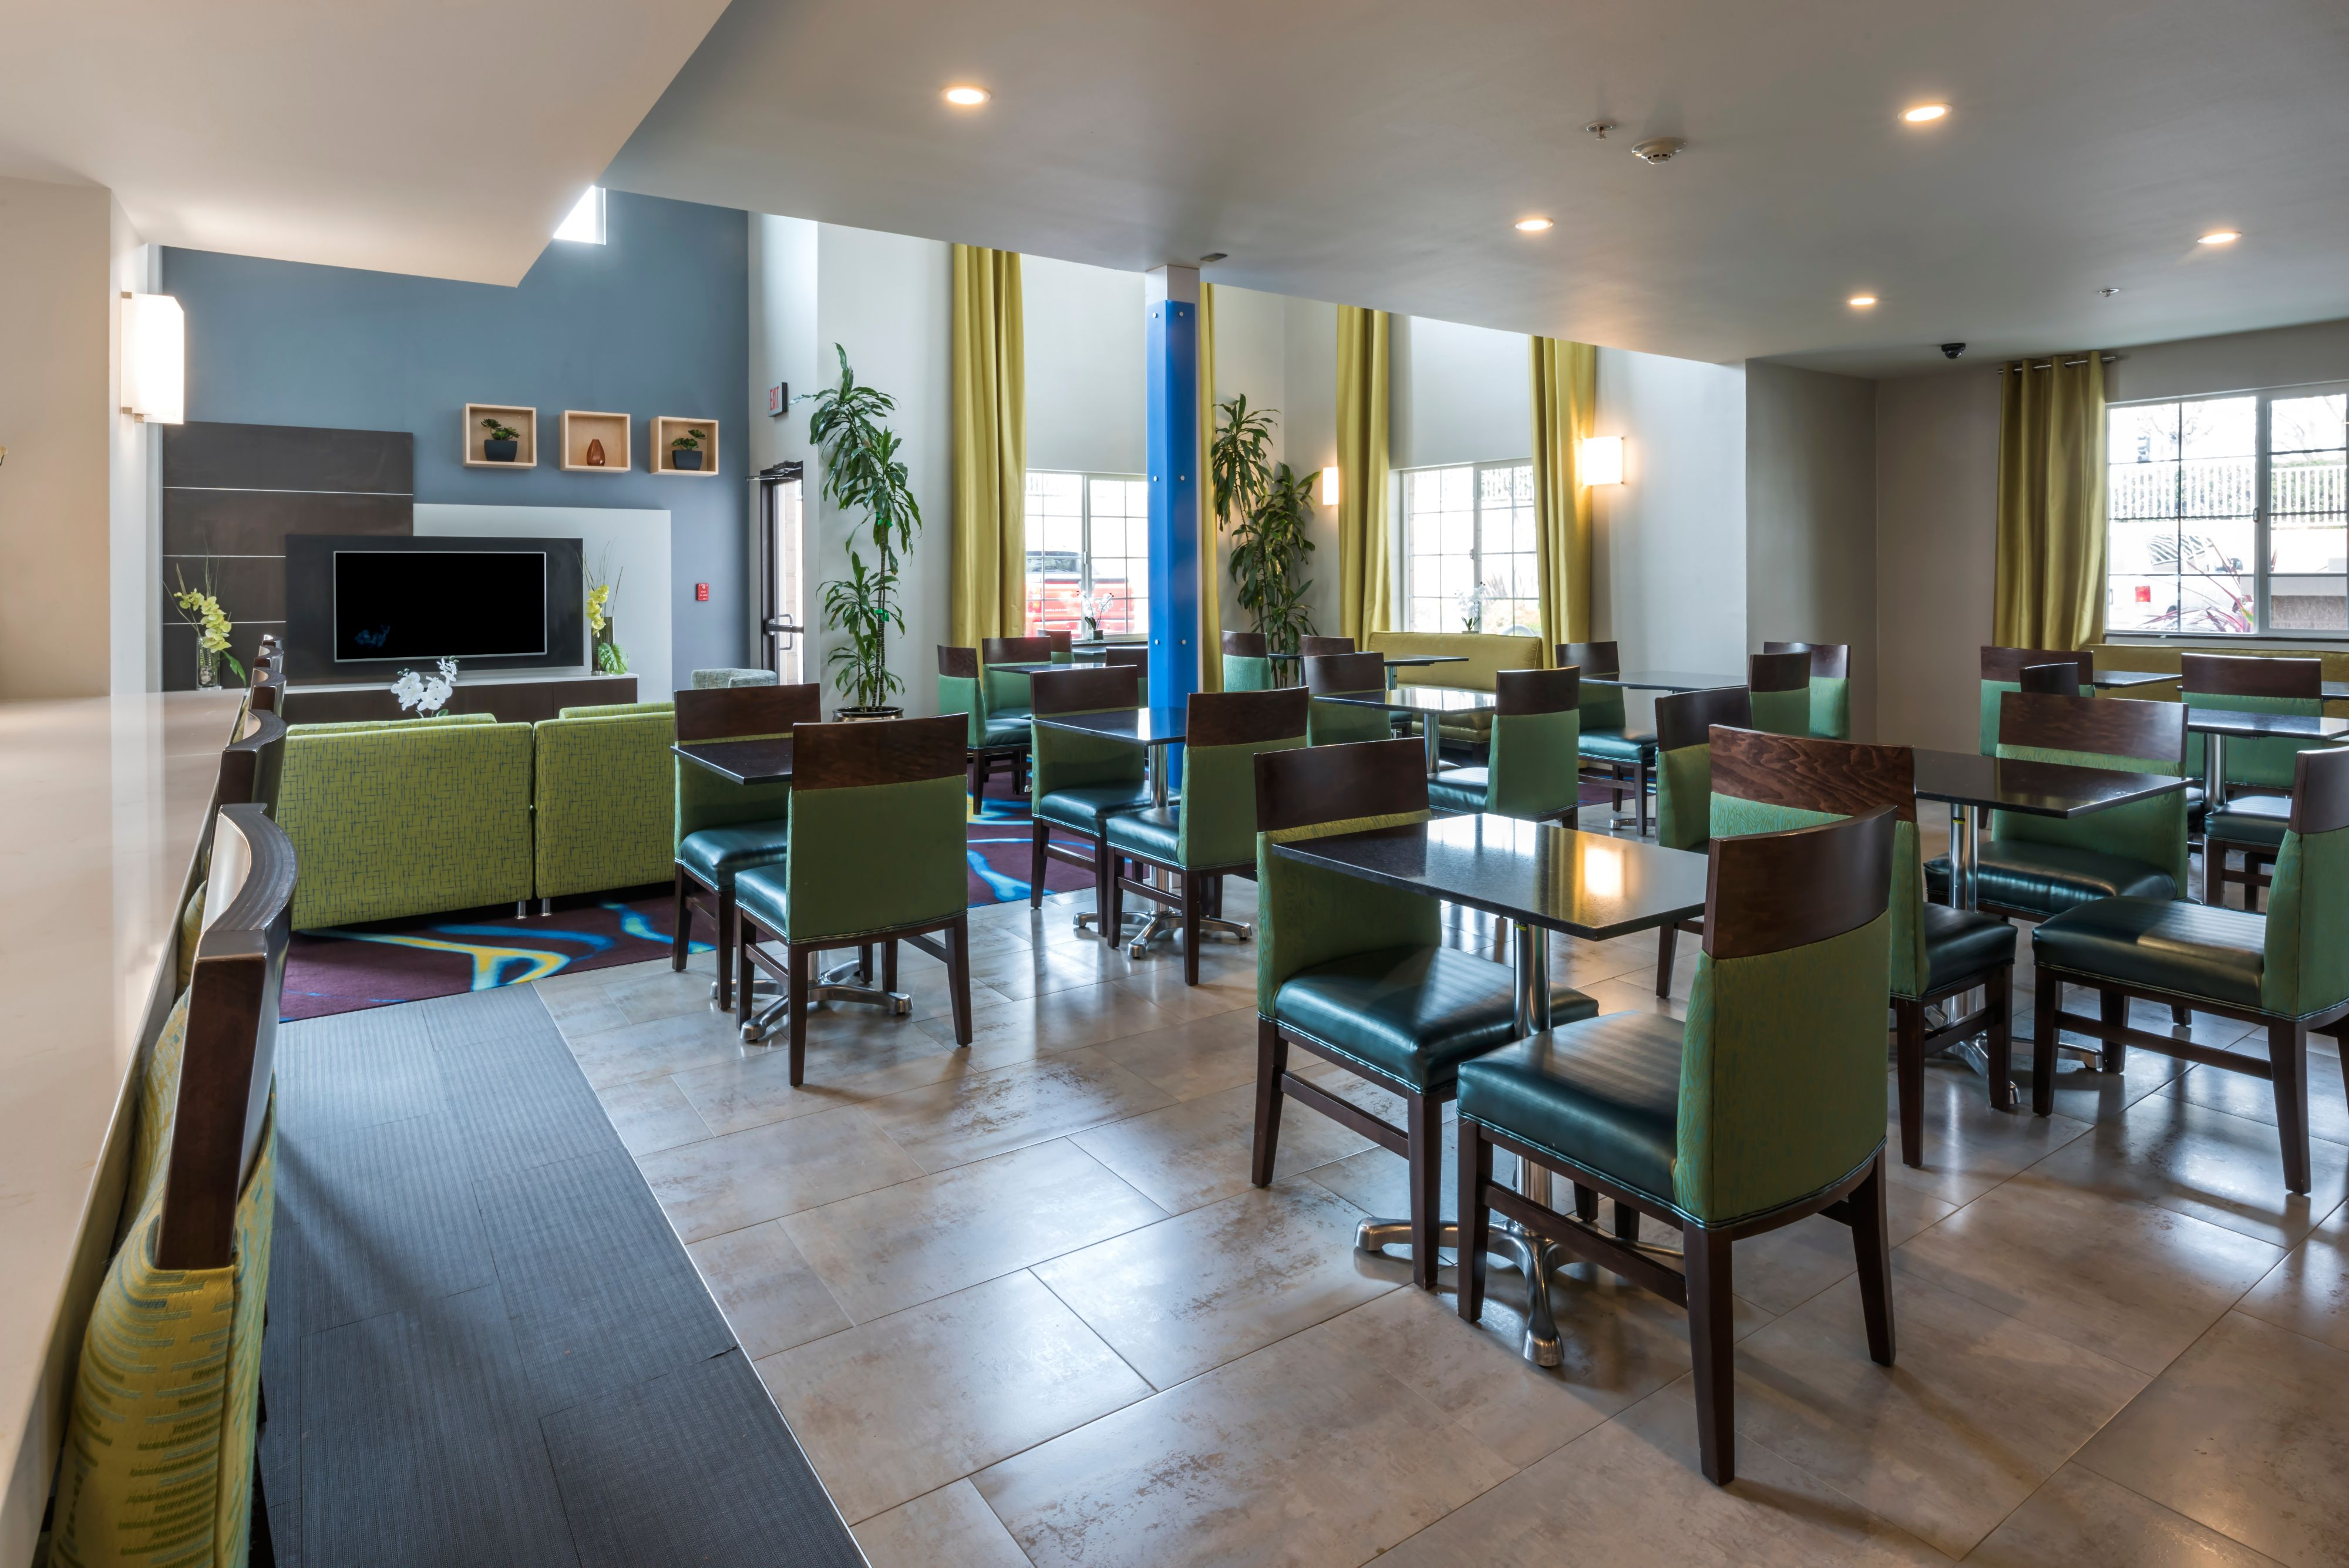 Holiday Inn Express & Suites Livermore image 4